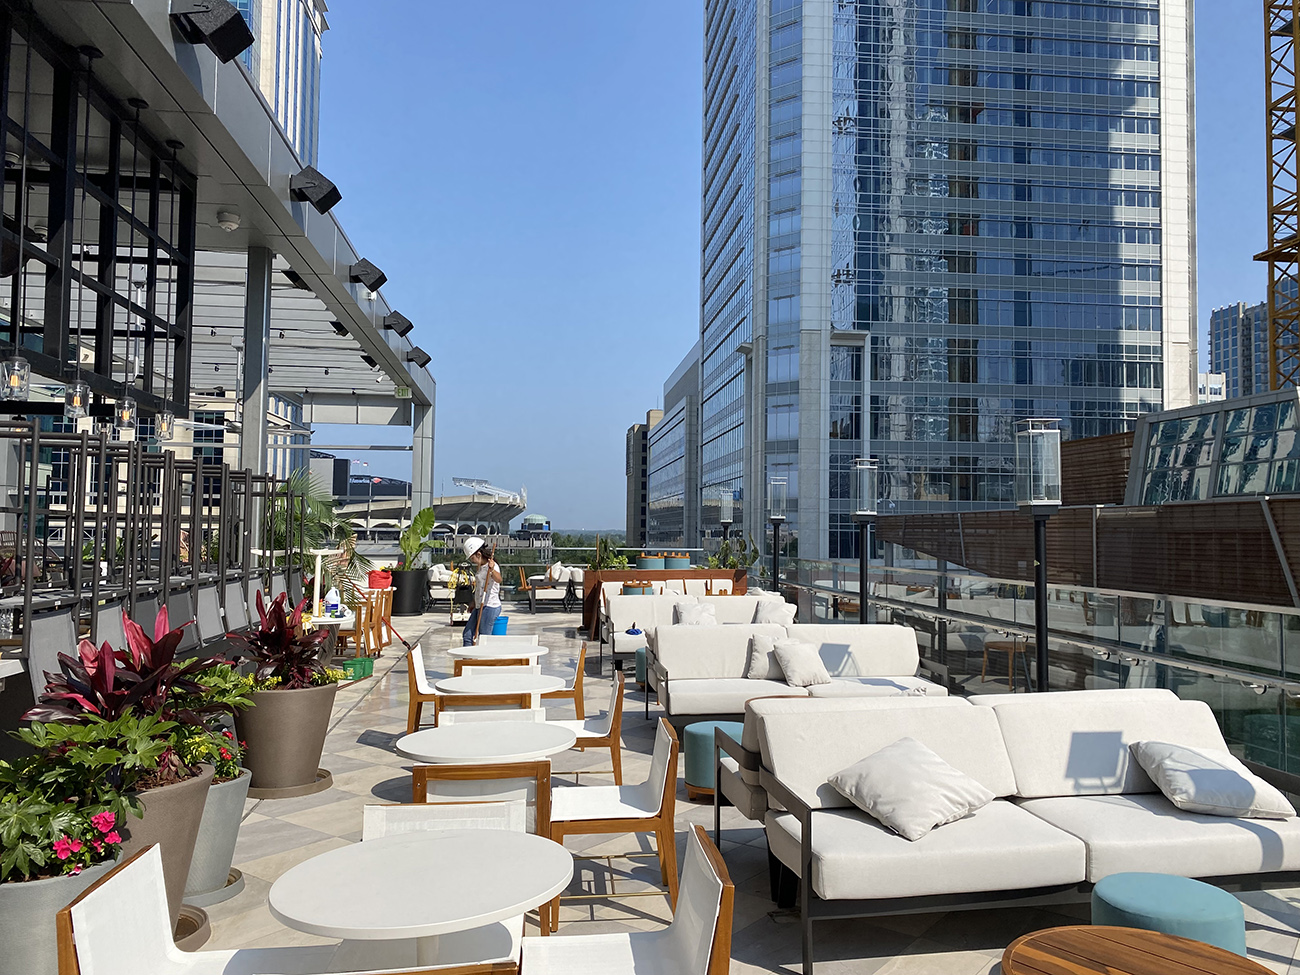 A first look inside the new JW Marriott uptown